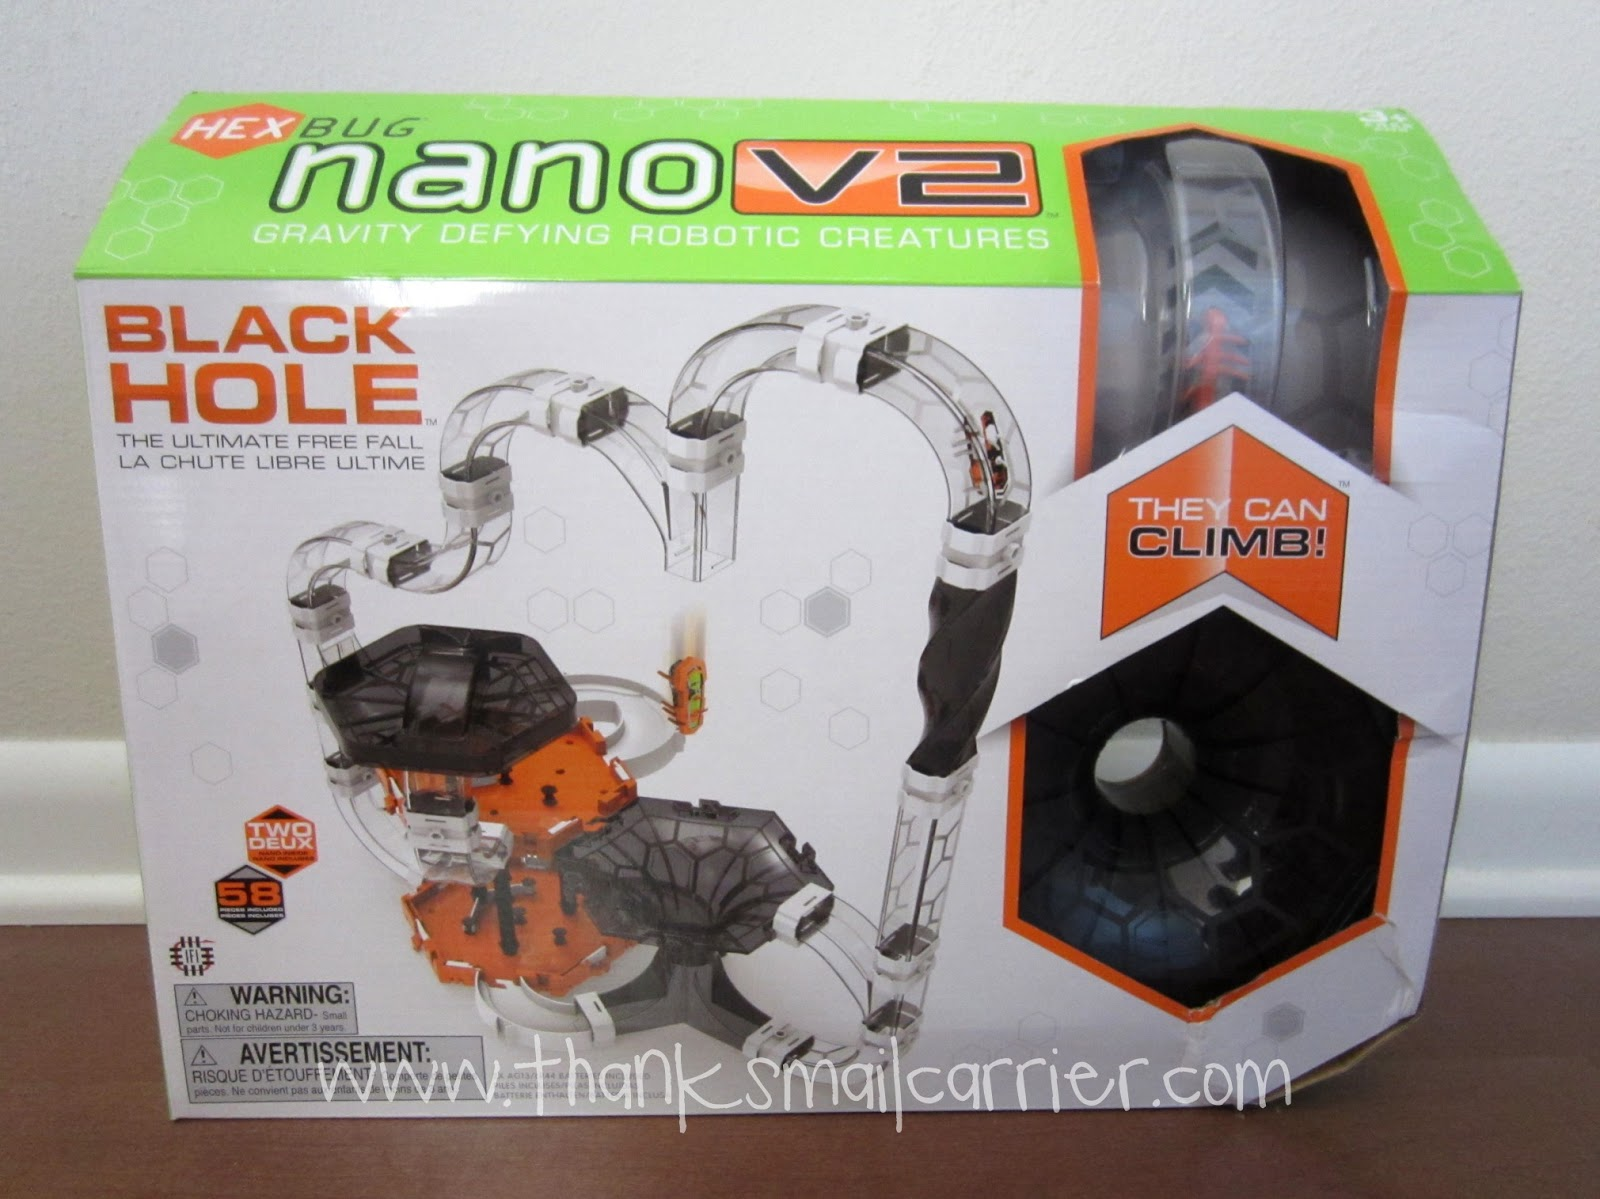 hexbug nano v2 black hole - photo #2